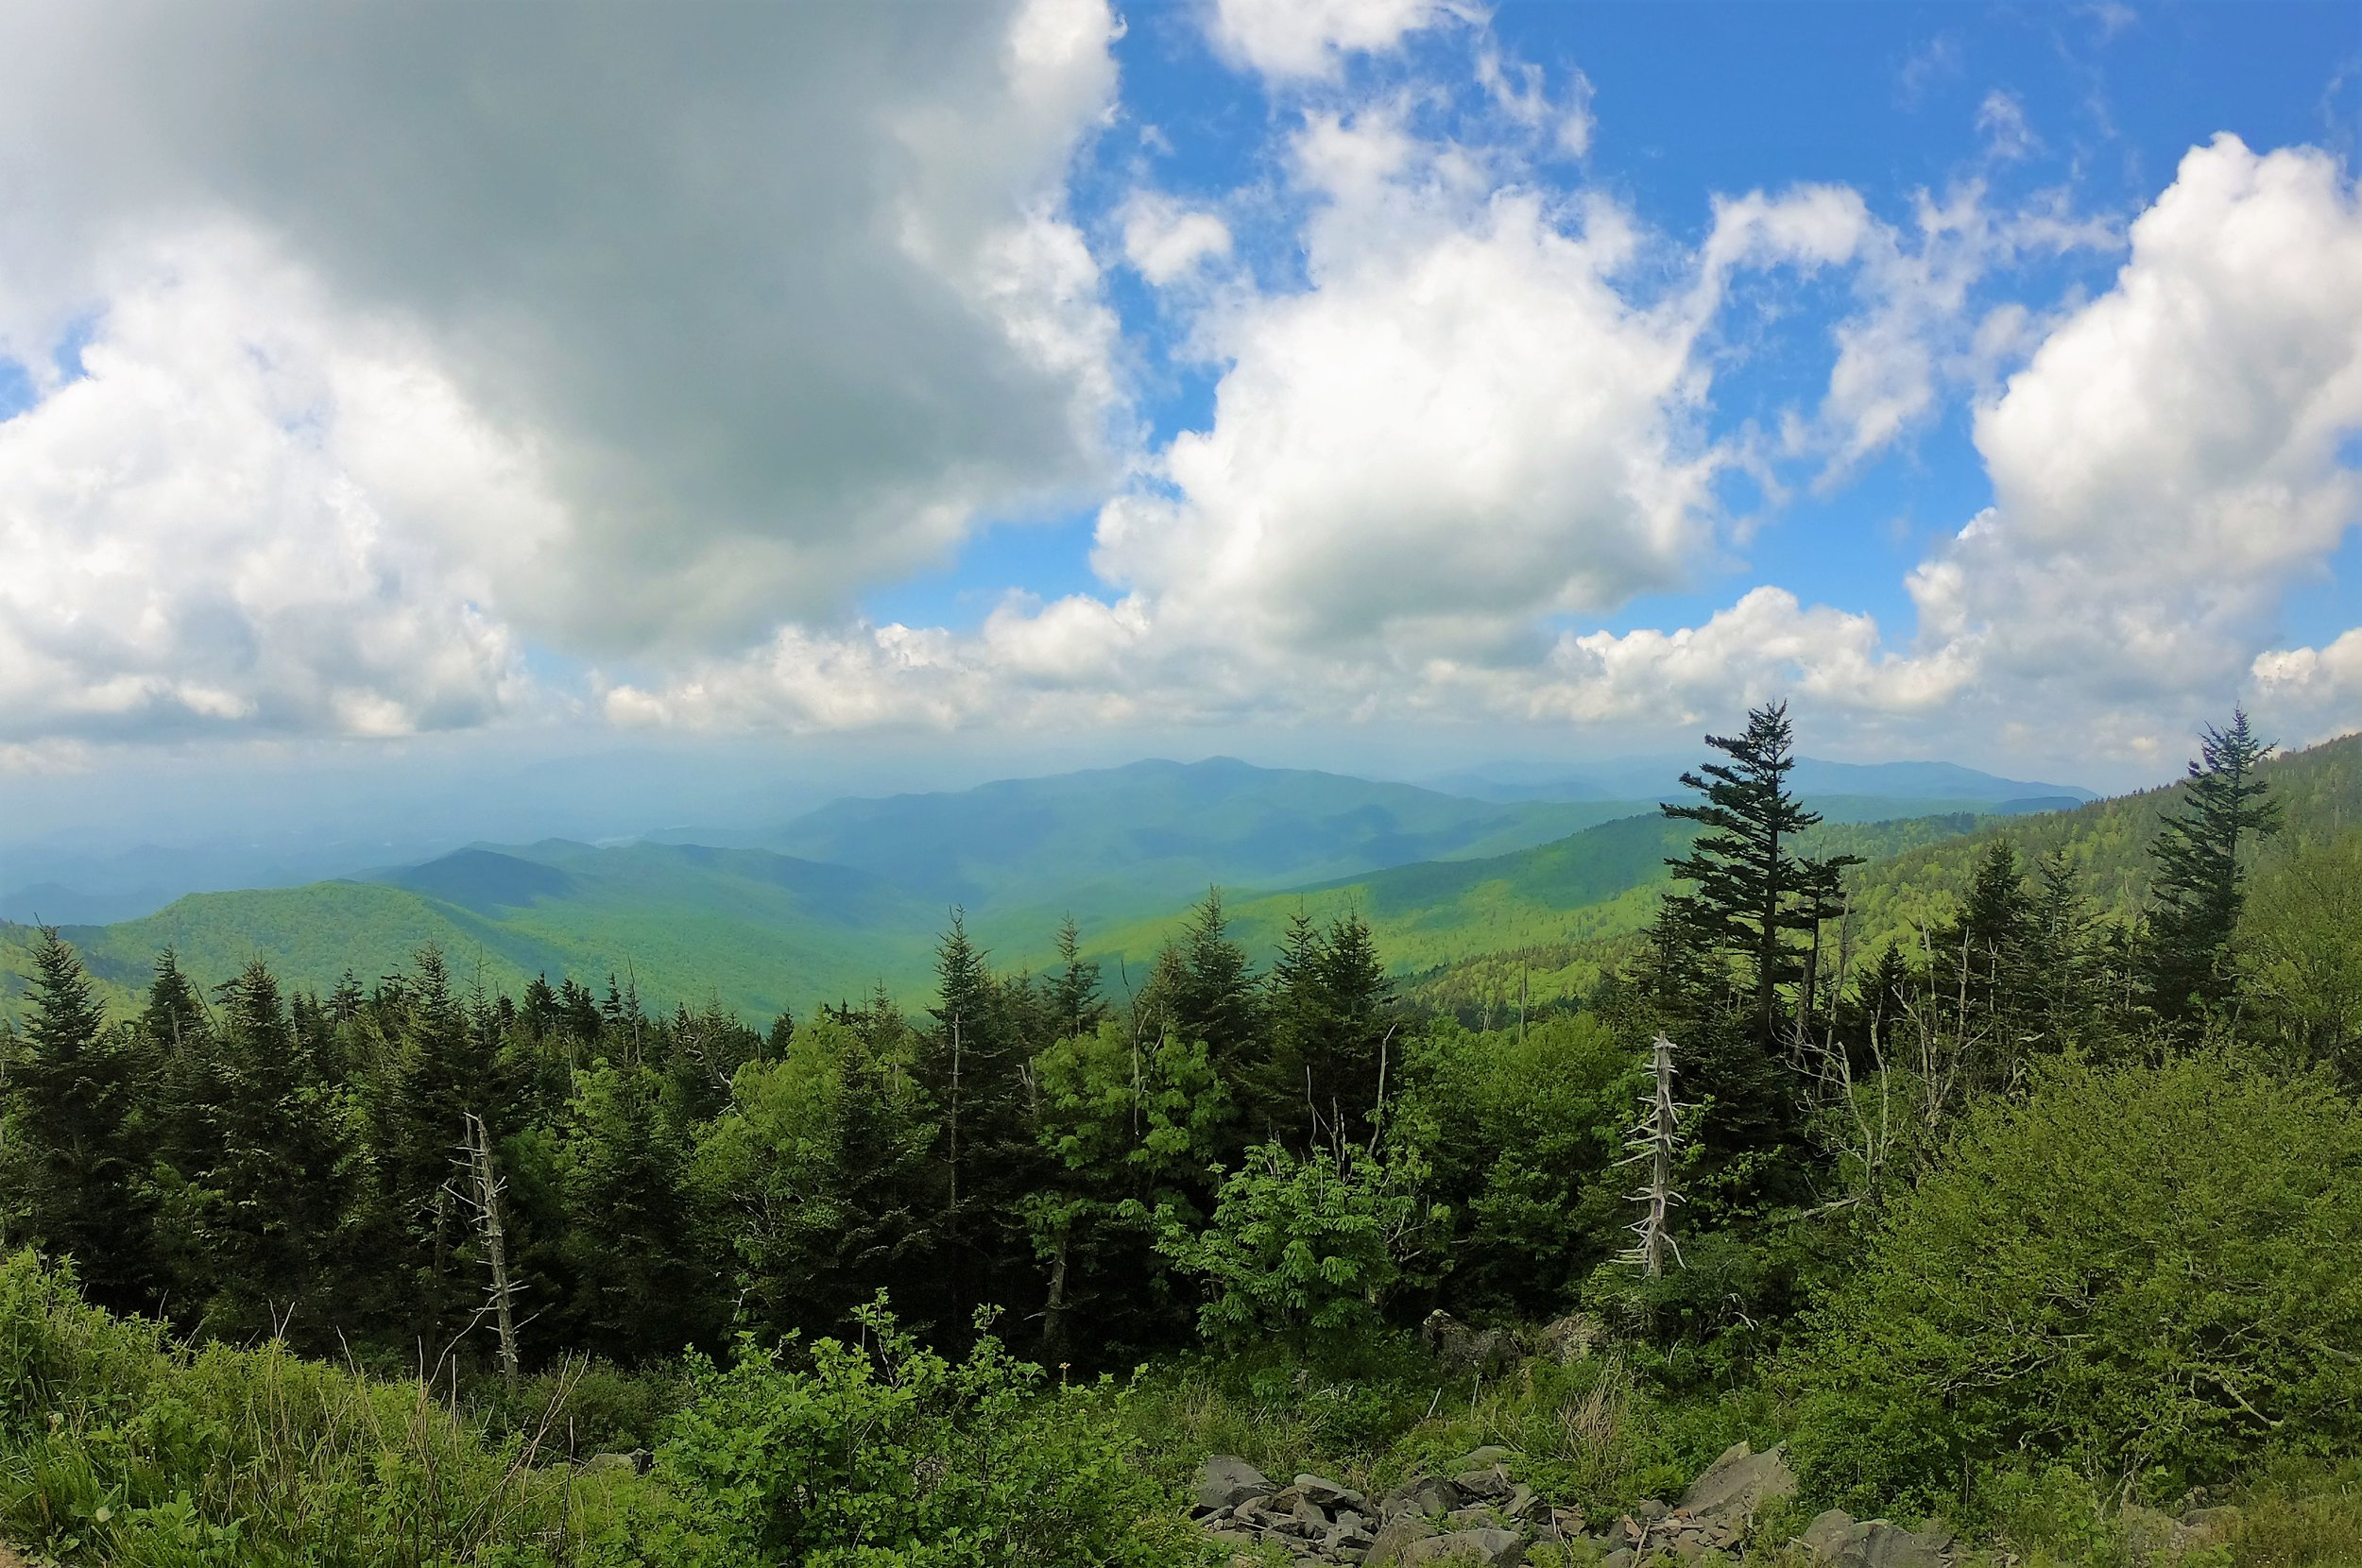 Clingman's Dome at Smokey Mountains, Tennessee